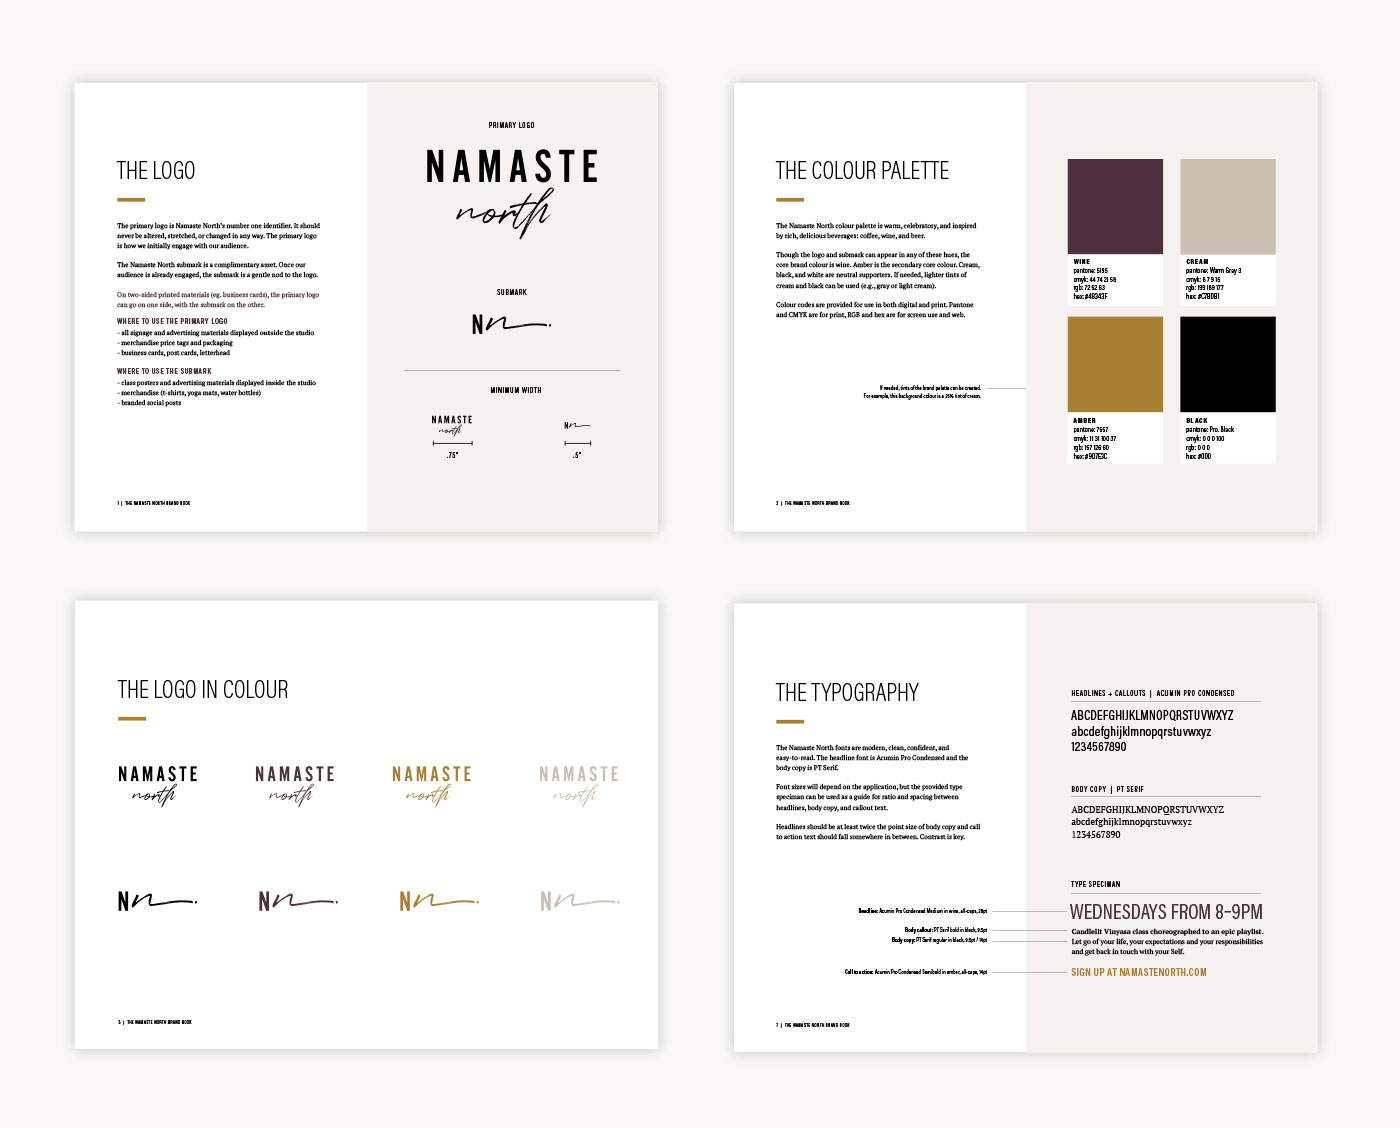 Brand design for Barrie-based yoga studio, Namaste North, by Flipside Creative.